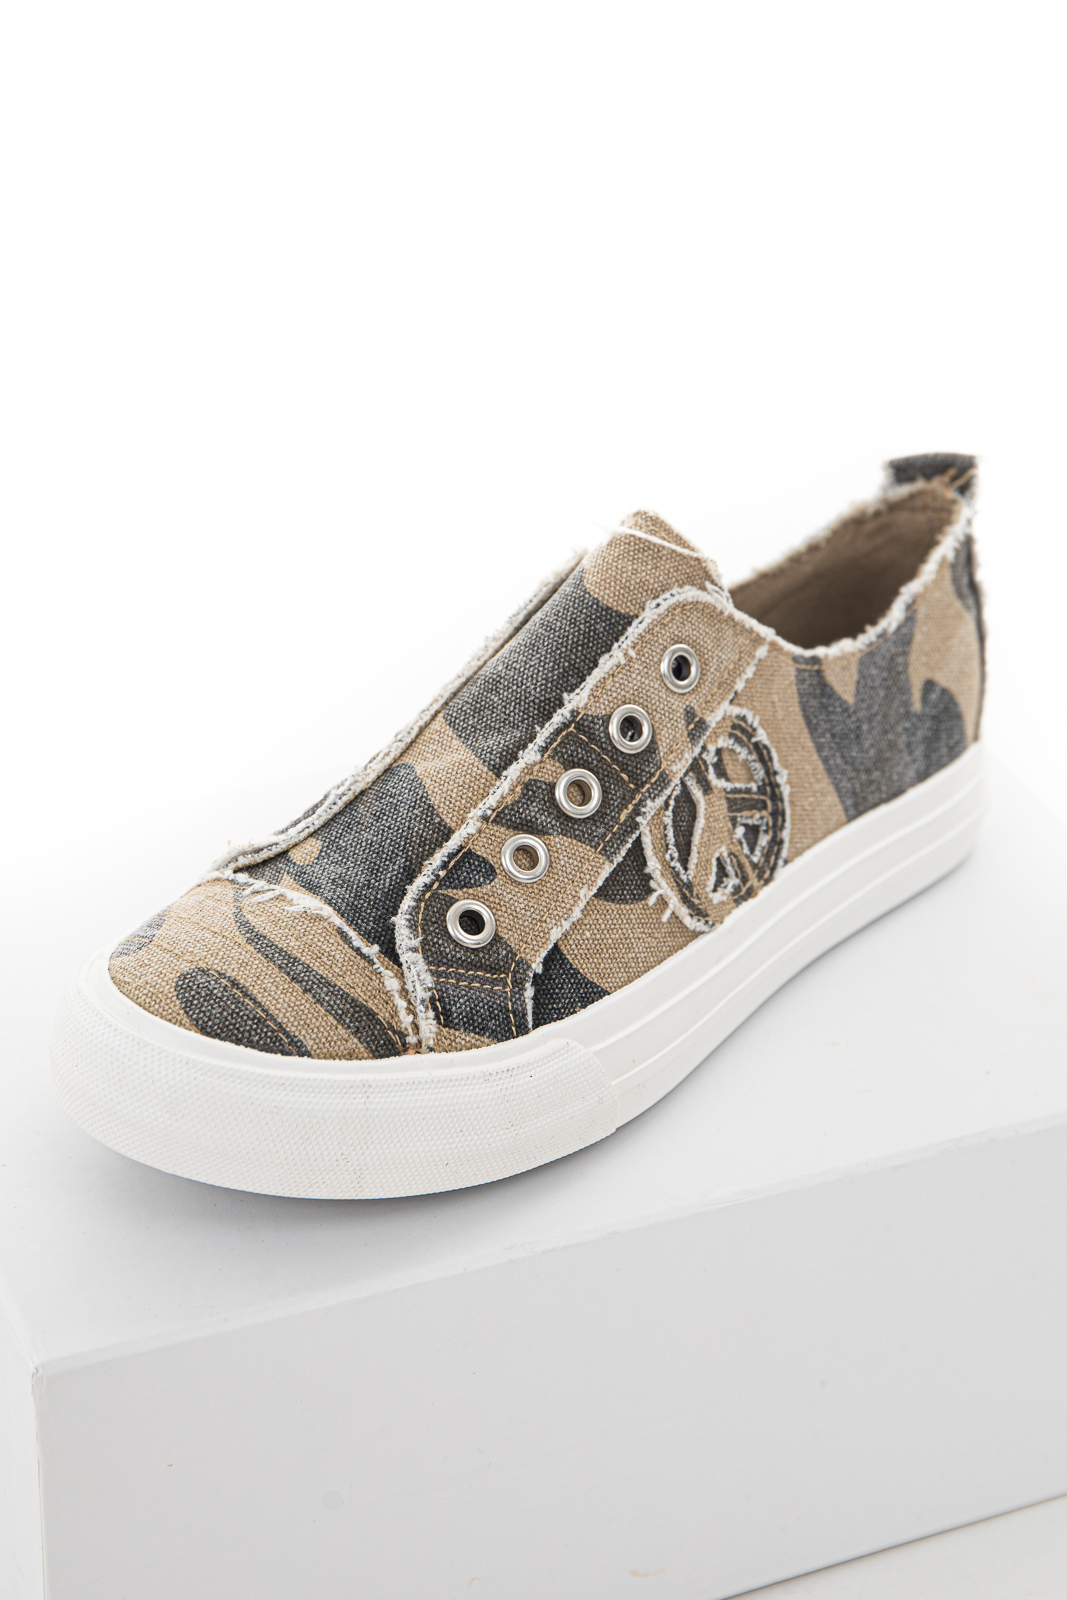 Faded Olive Camo Print Slip On Sneaker with Frayed Details